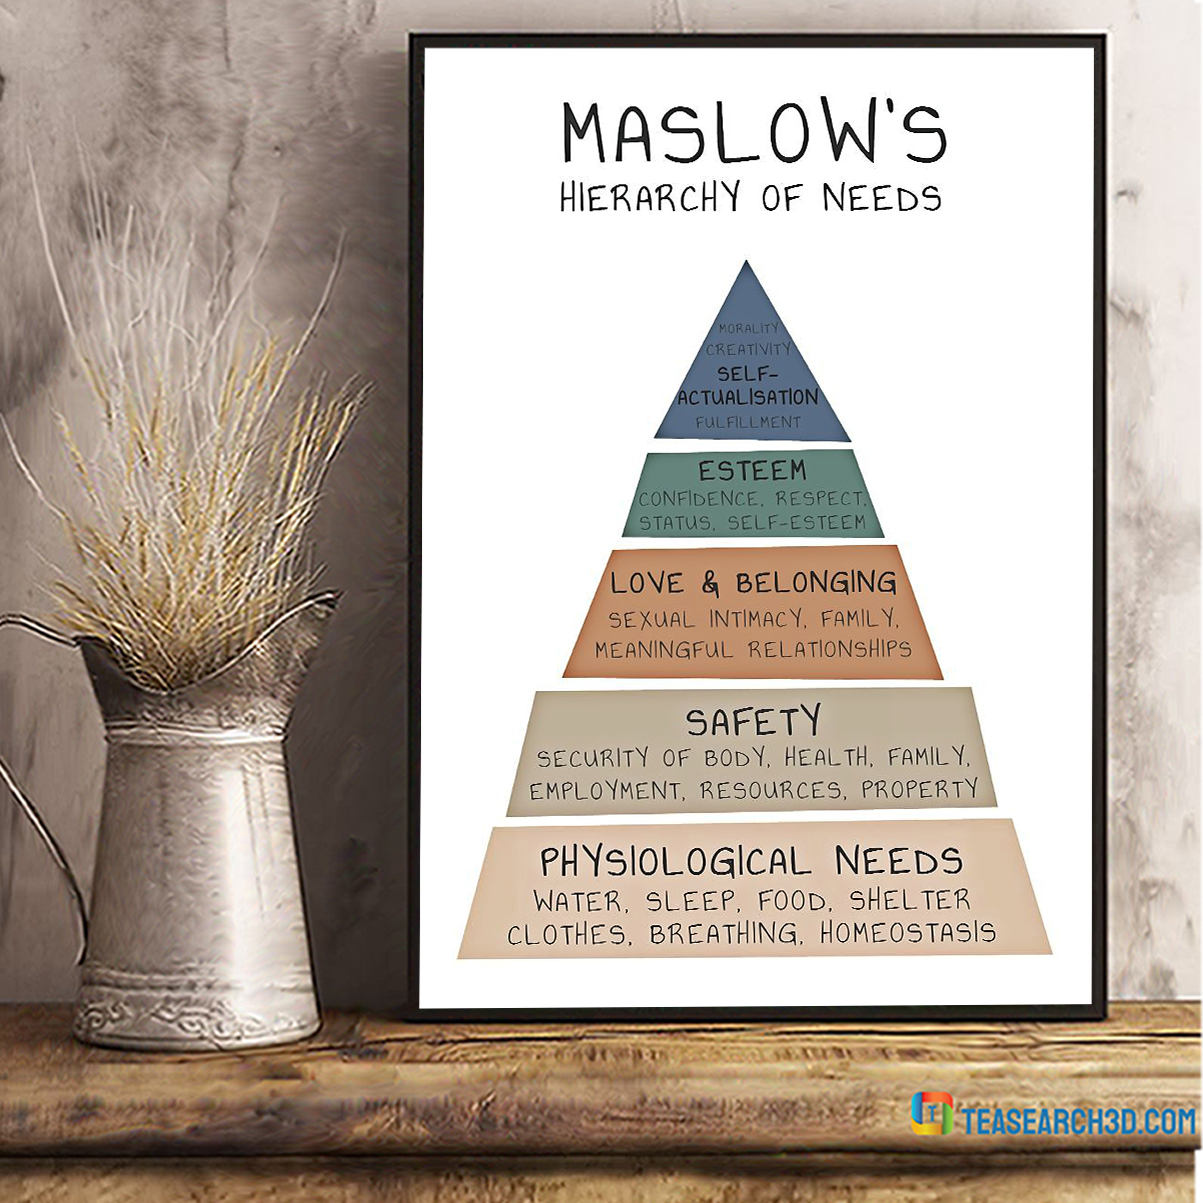 Social worker maslow's hierarchy of need vertical poster A2